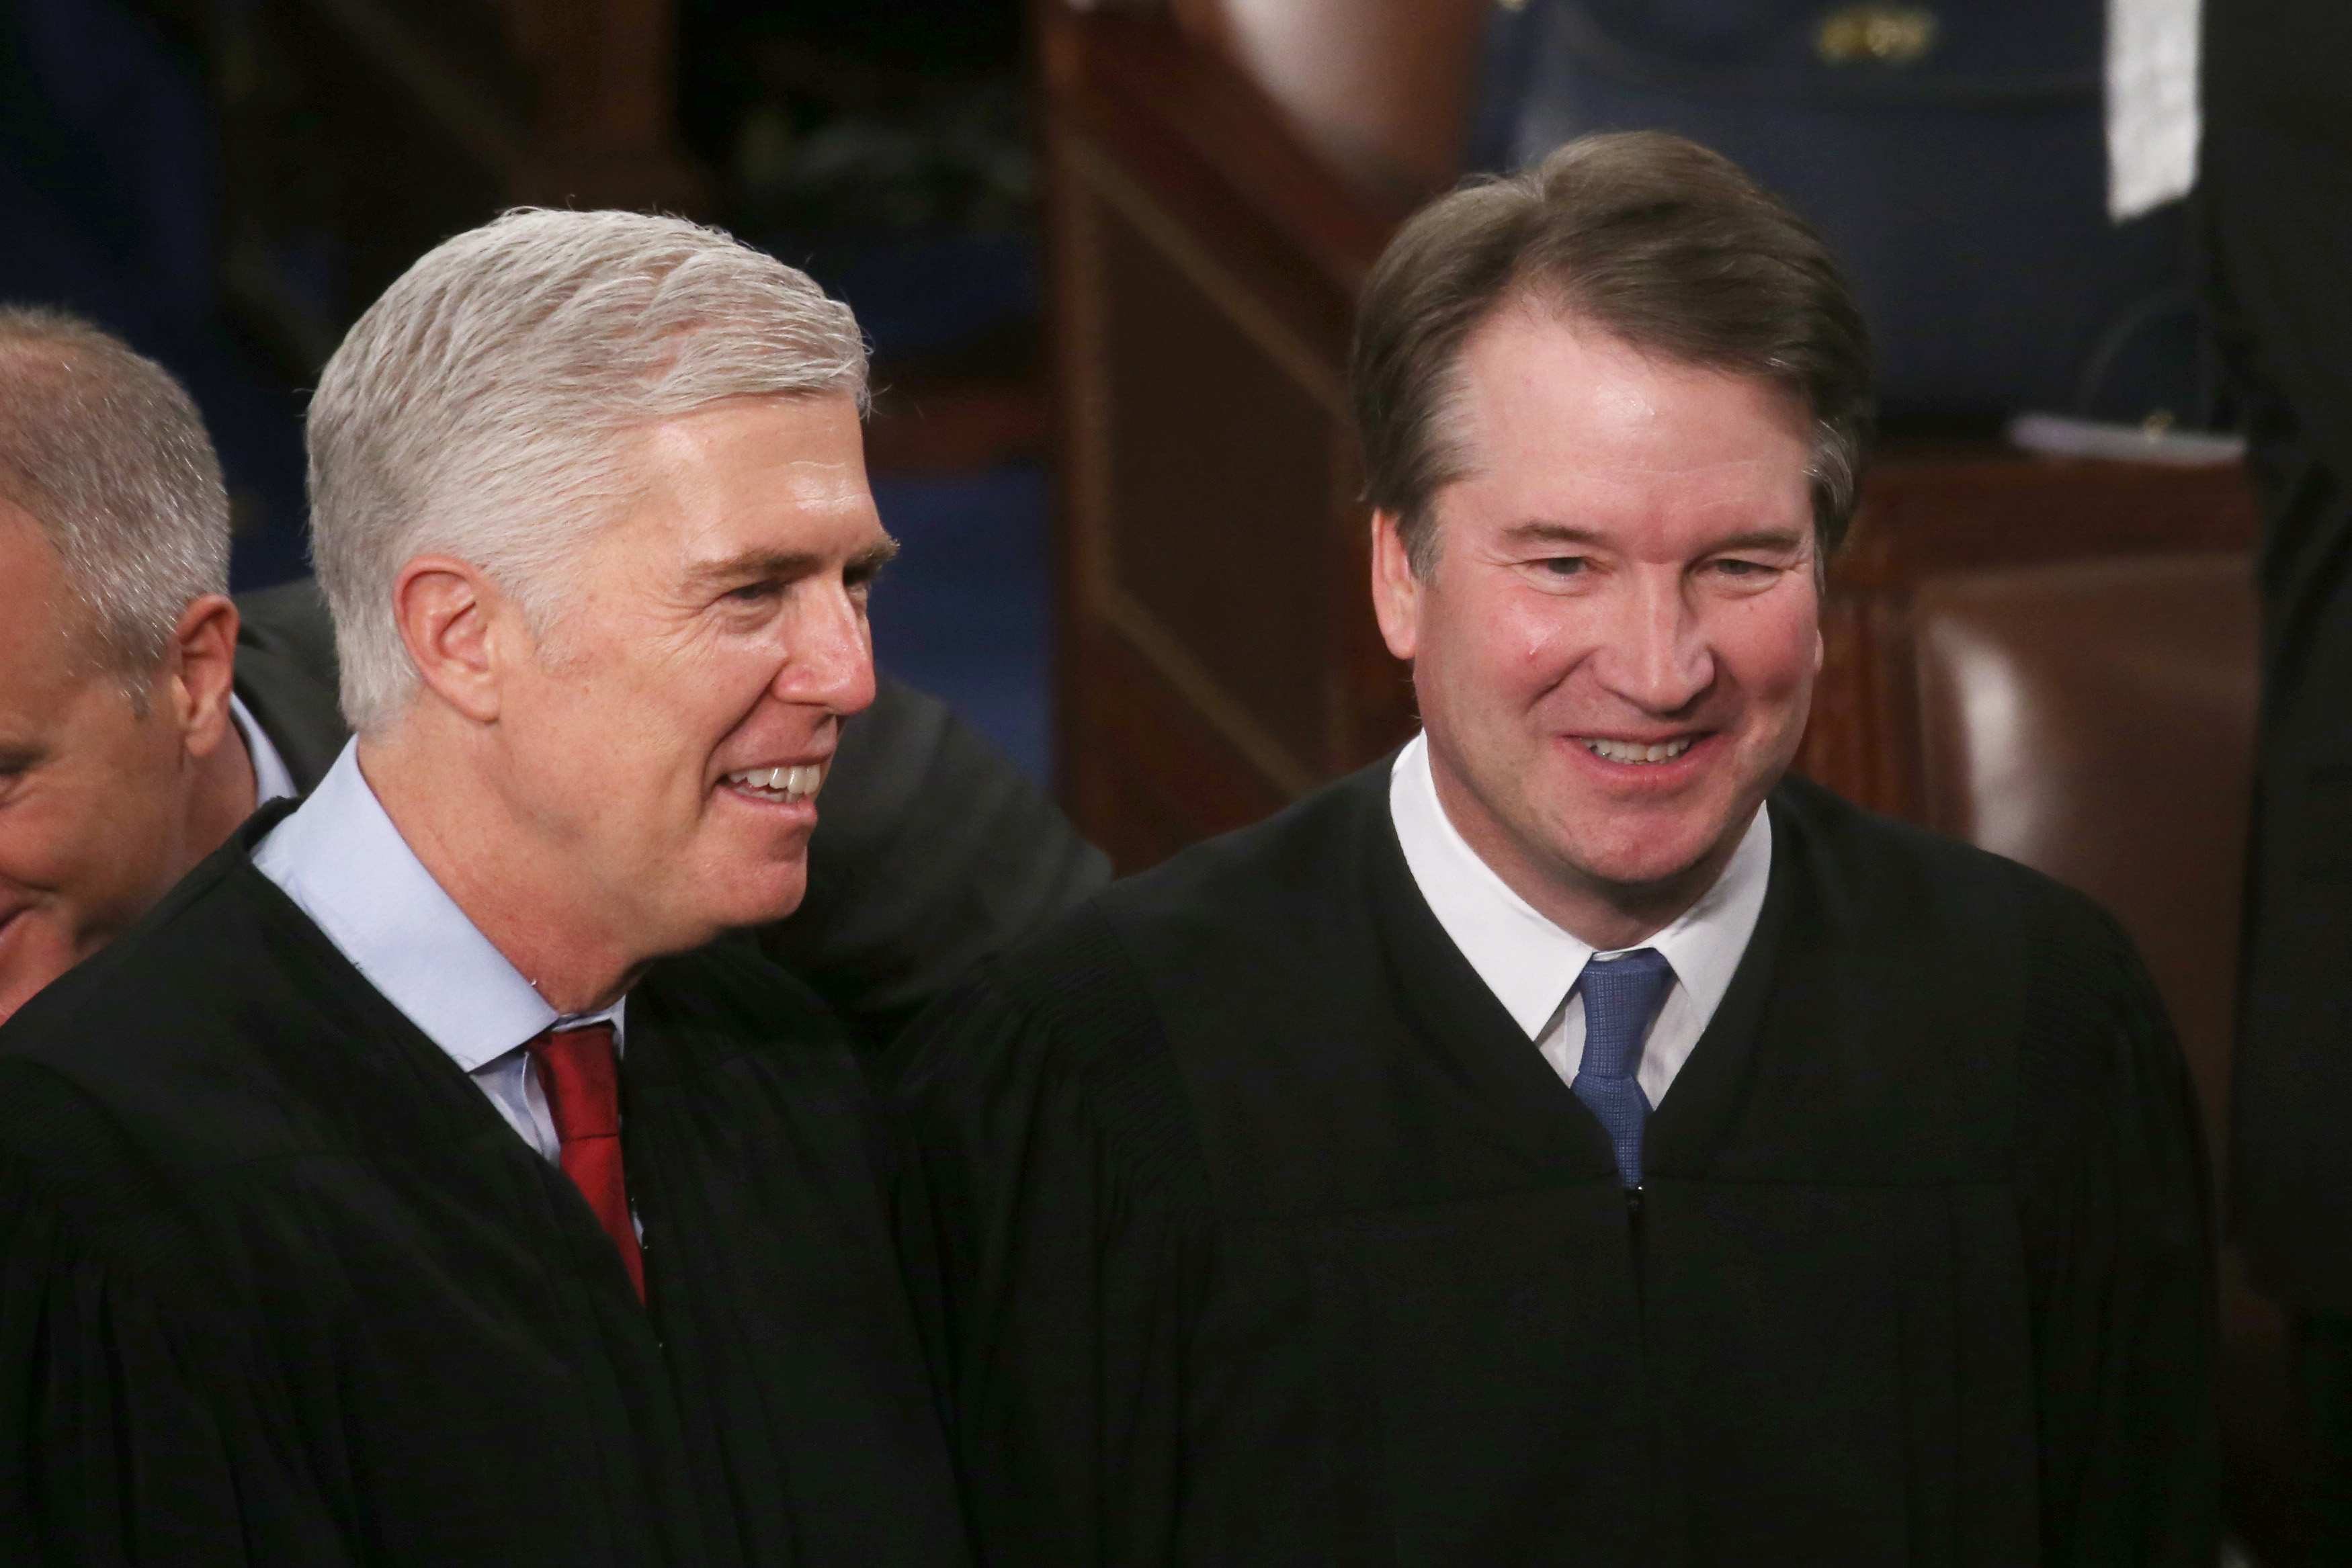 Supreme Court Justices Neil Gorsuch (L) and Brett Kavanaugh attend the State of the Union address in the chamber of the U.S. House of Representatives on February 04, 2020